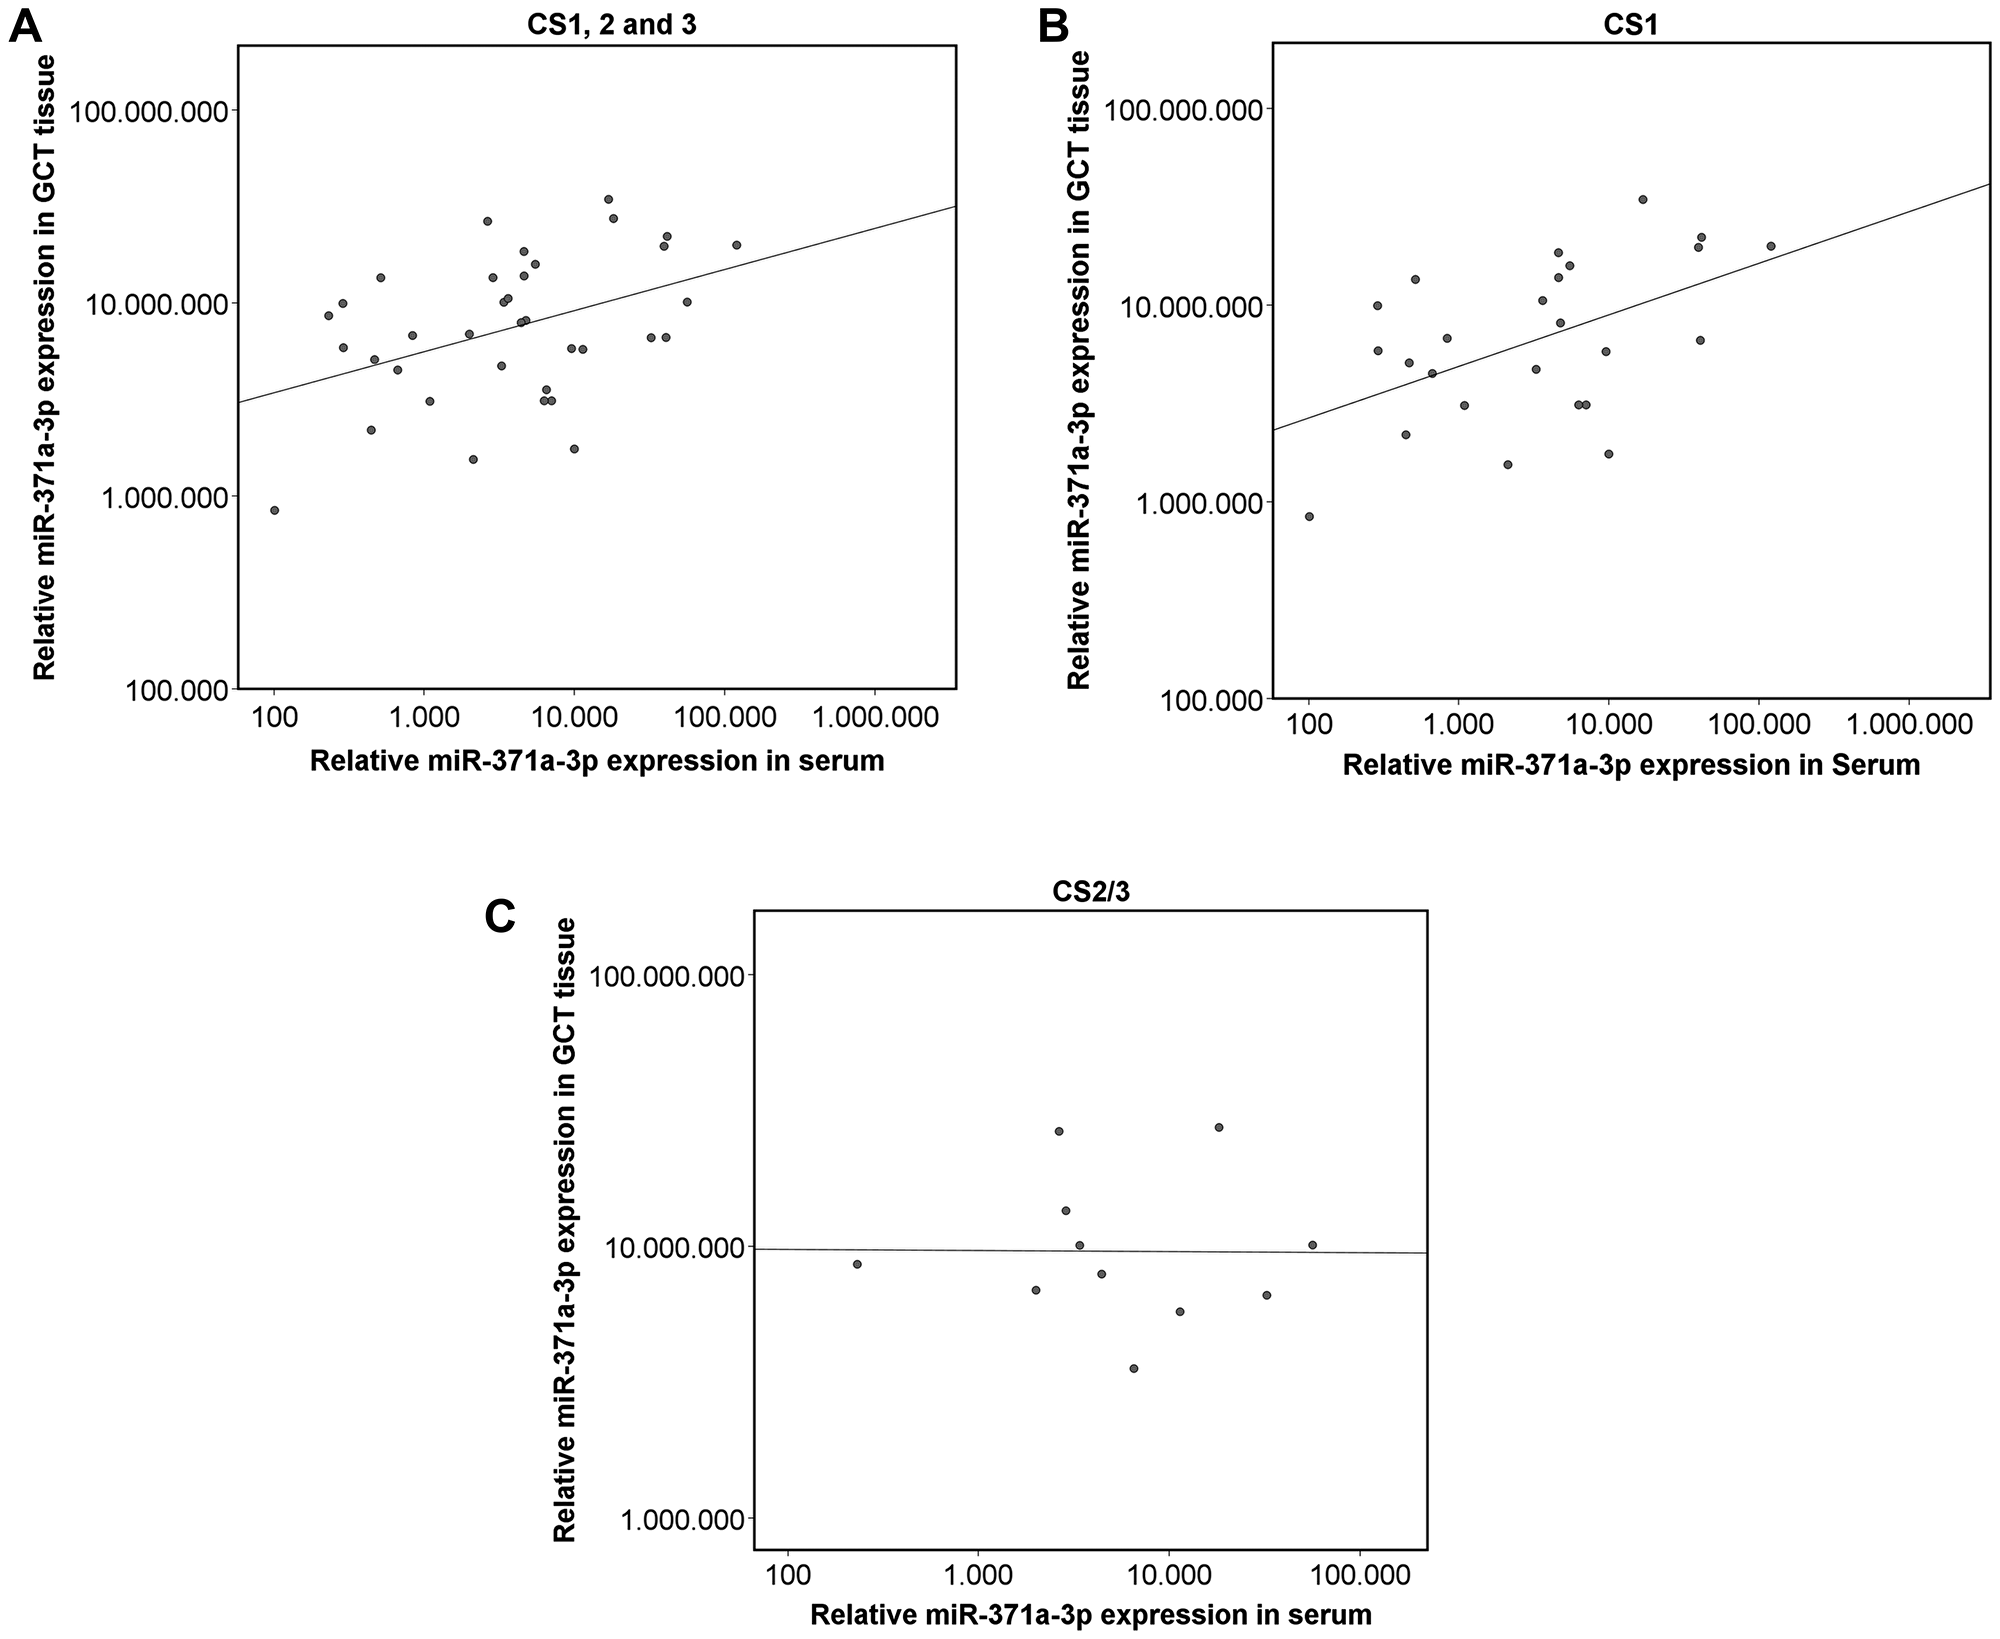 Scatterplot of the relative miR-371a-3p expression in GCT tissue and corresponding serum levels.